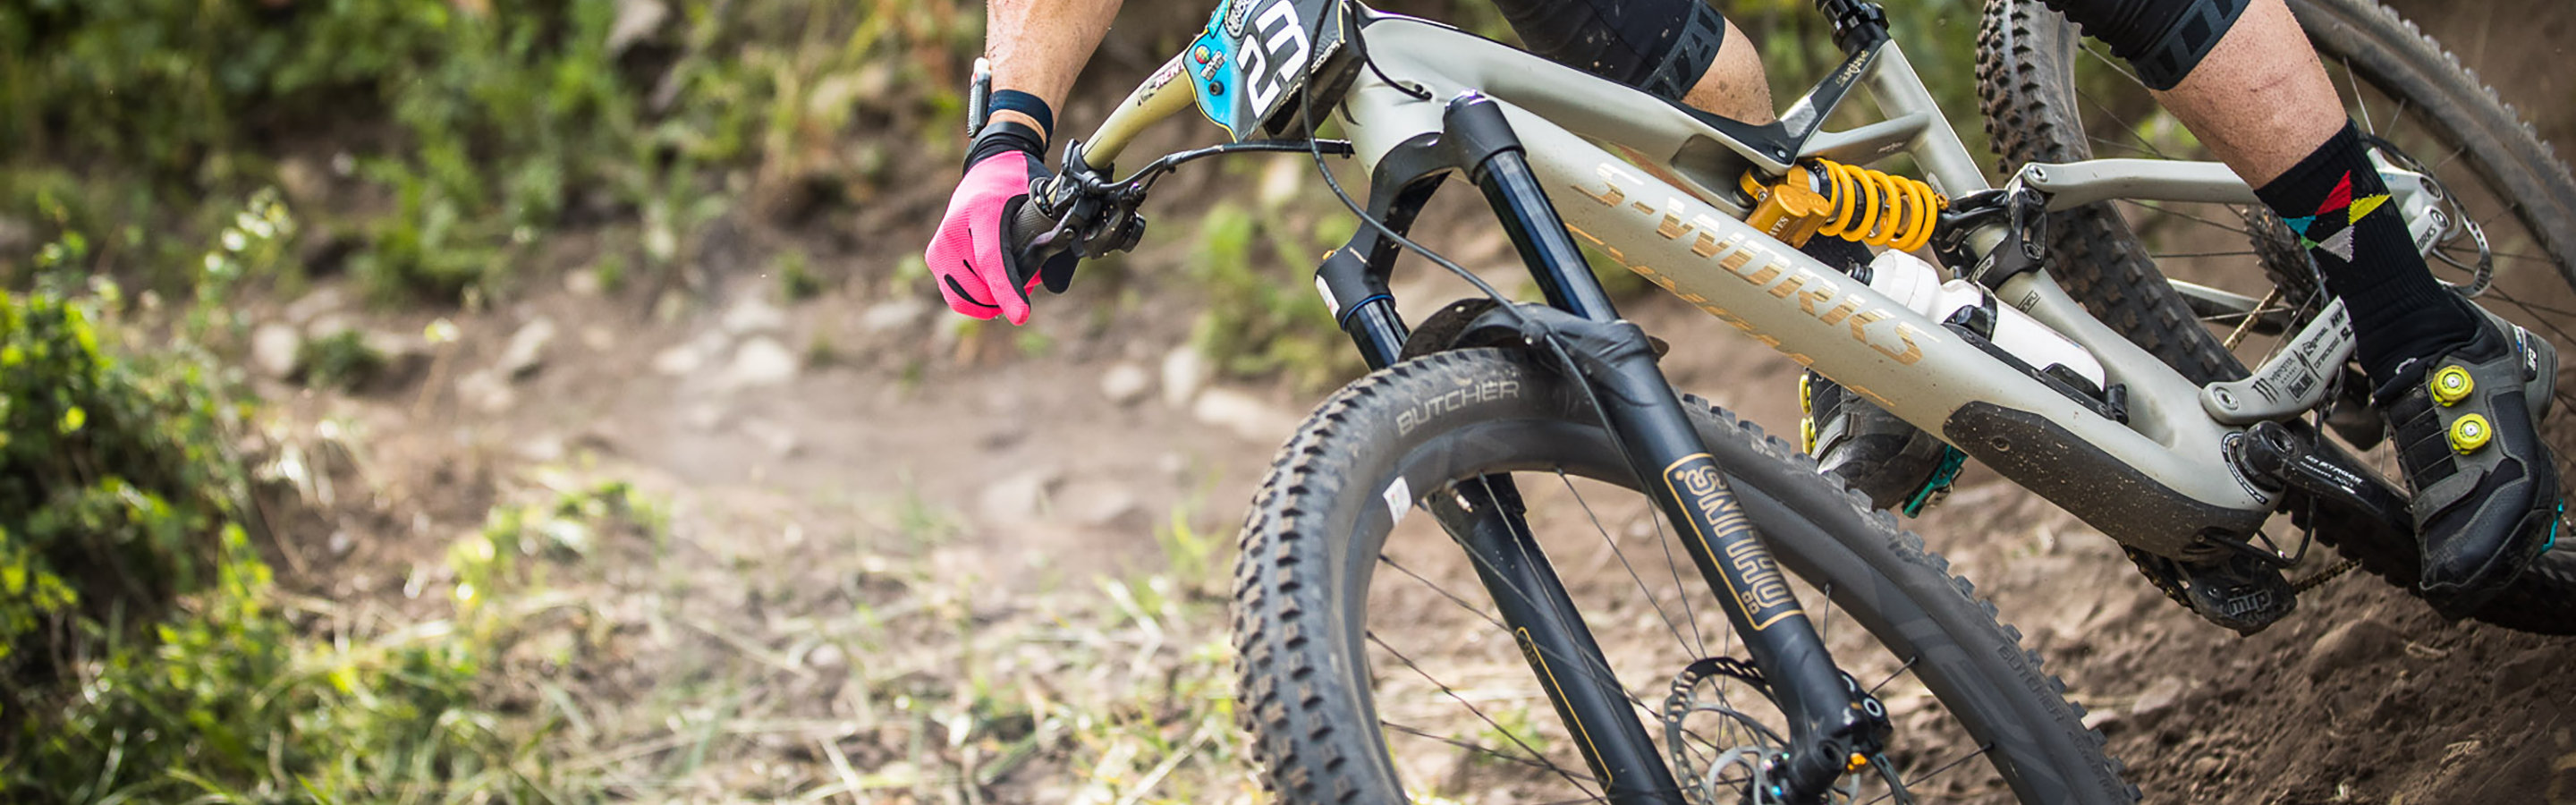 Suspension Mountain Bike Parts On To Absorb Bumps In A Road Shock Absorber With